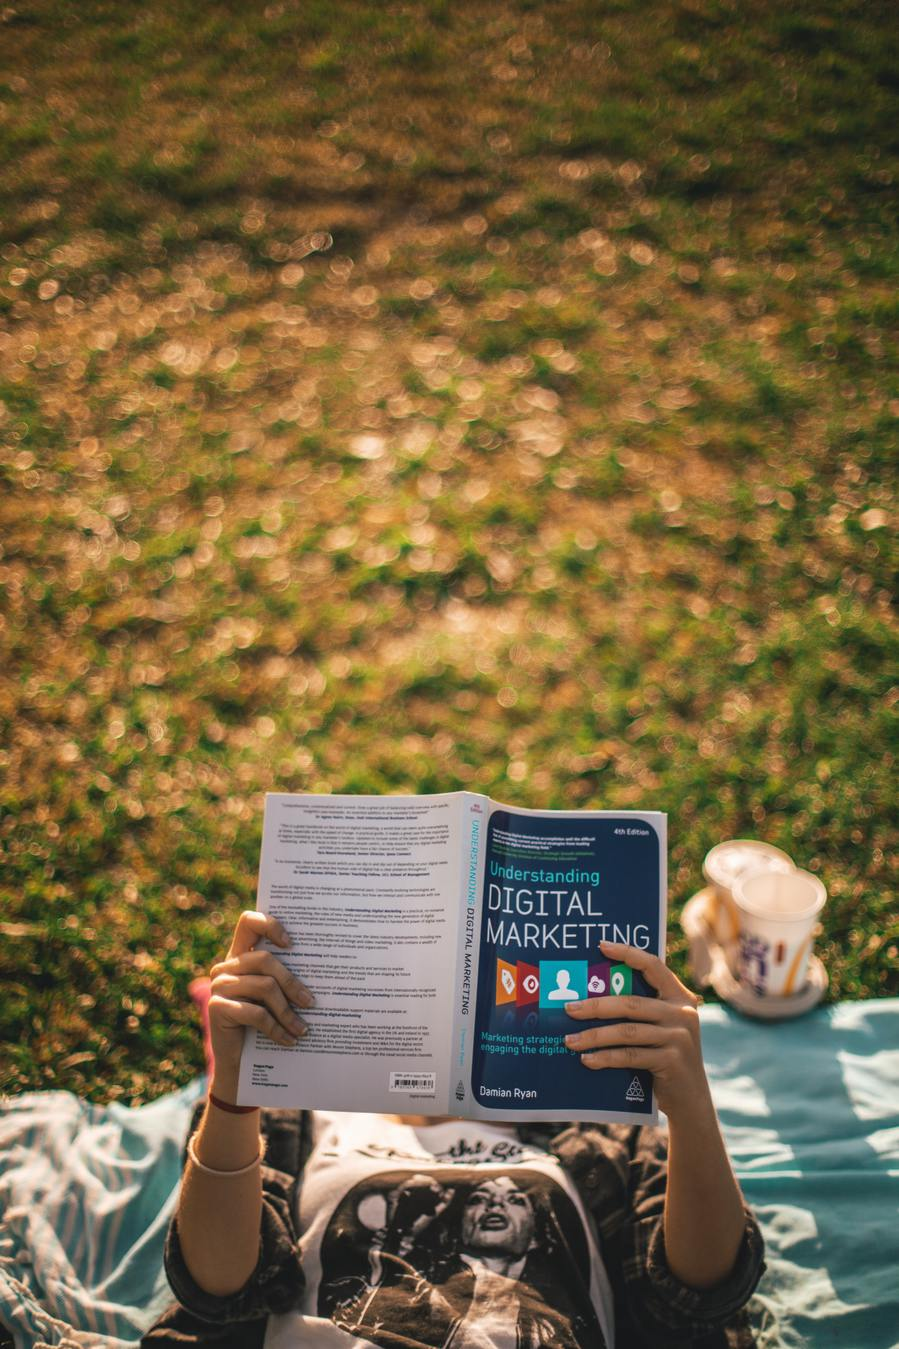 Person studying a book on digital marketing outside